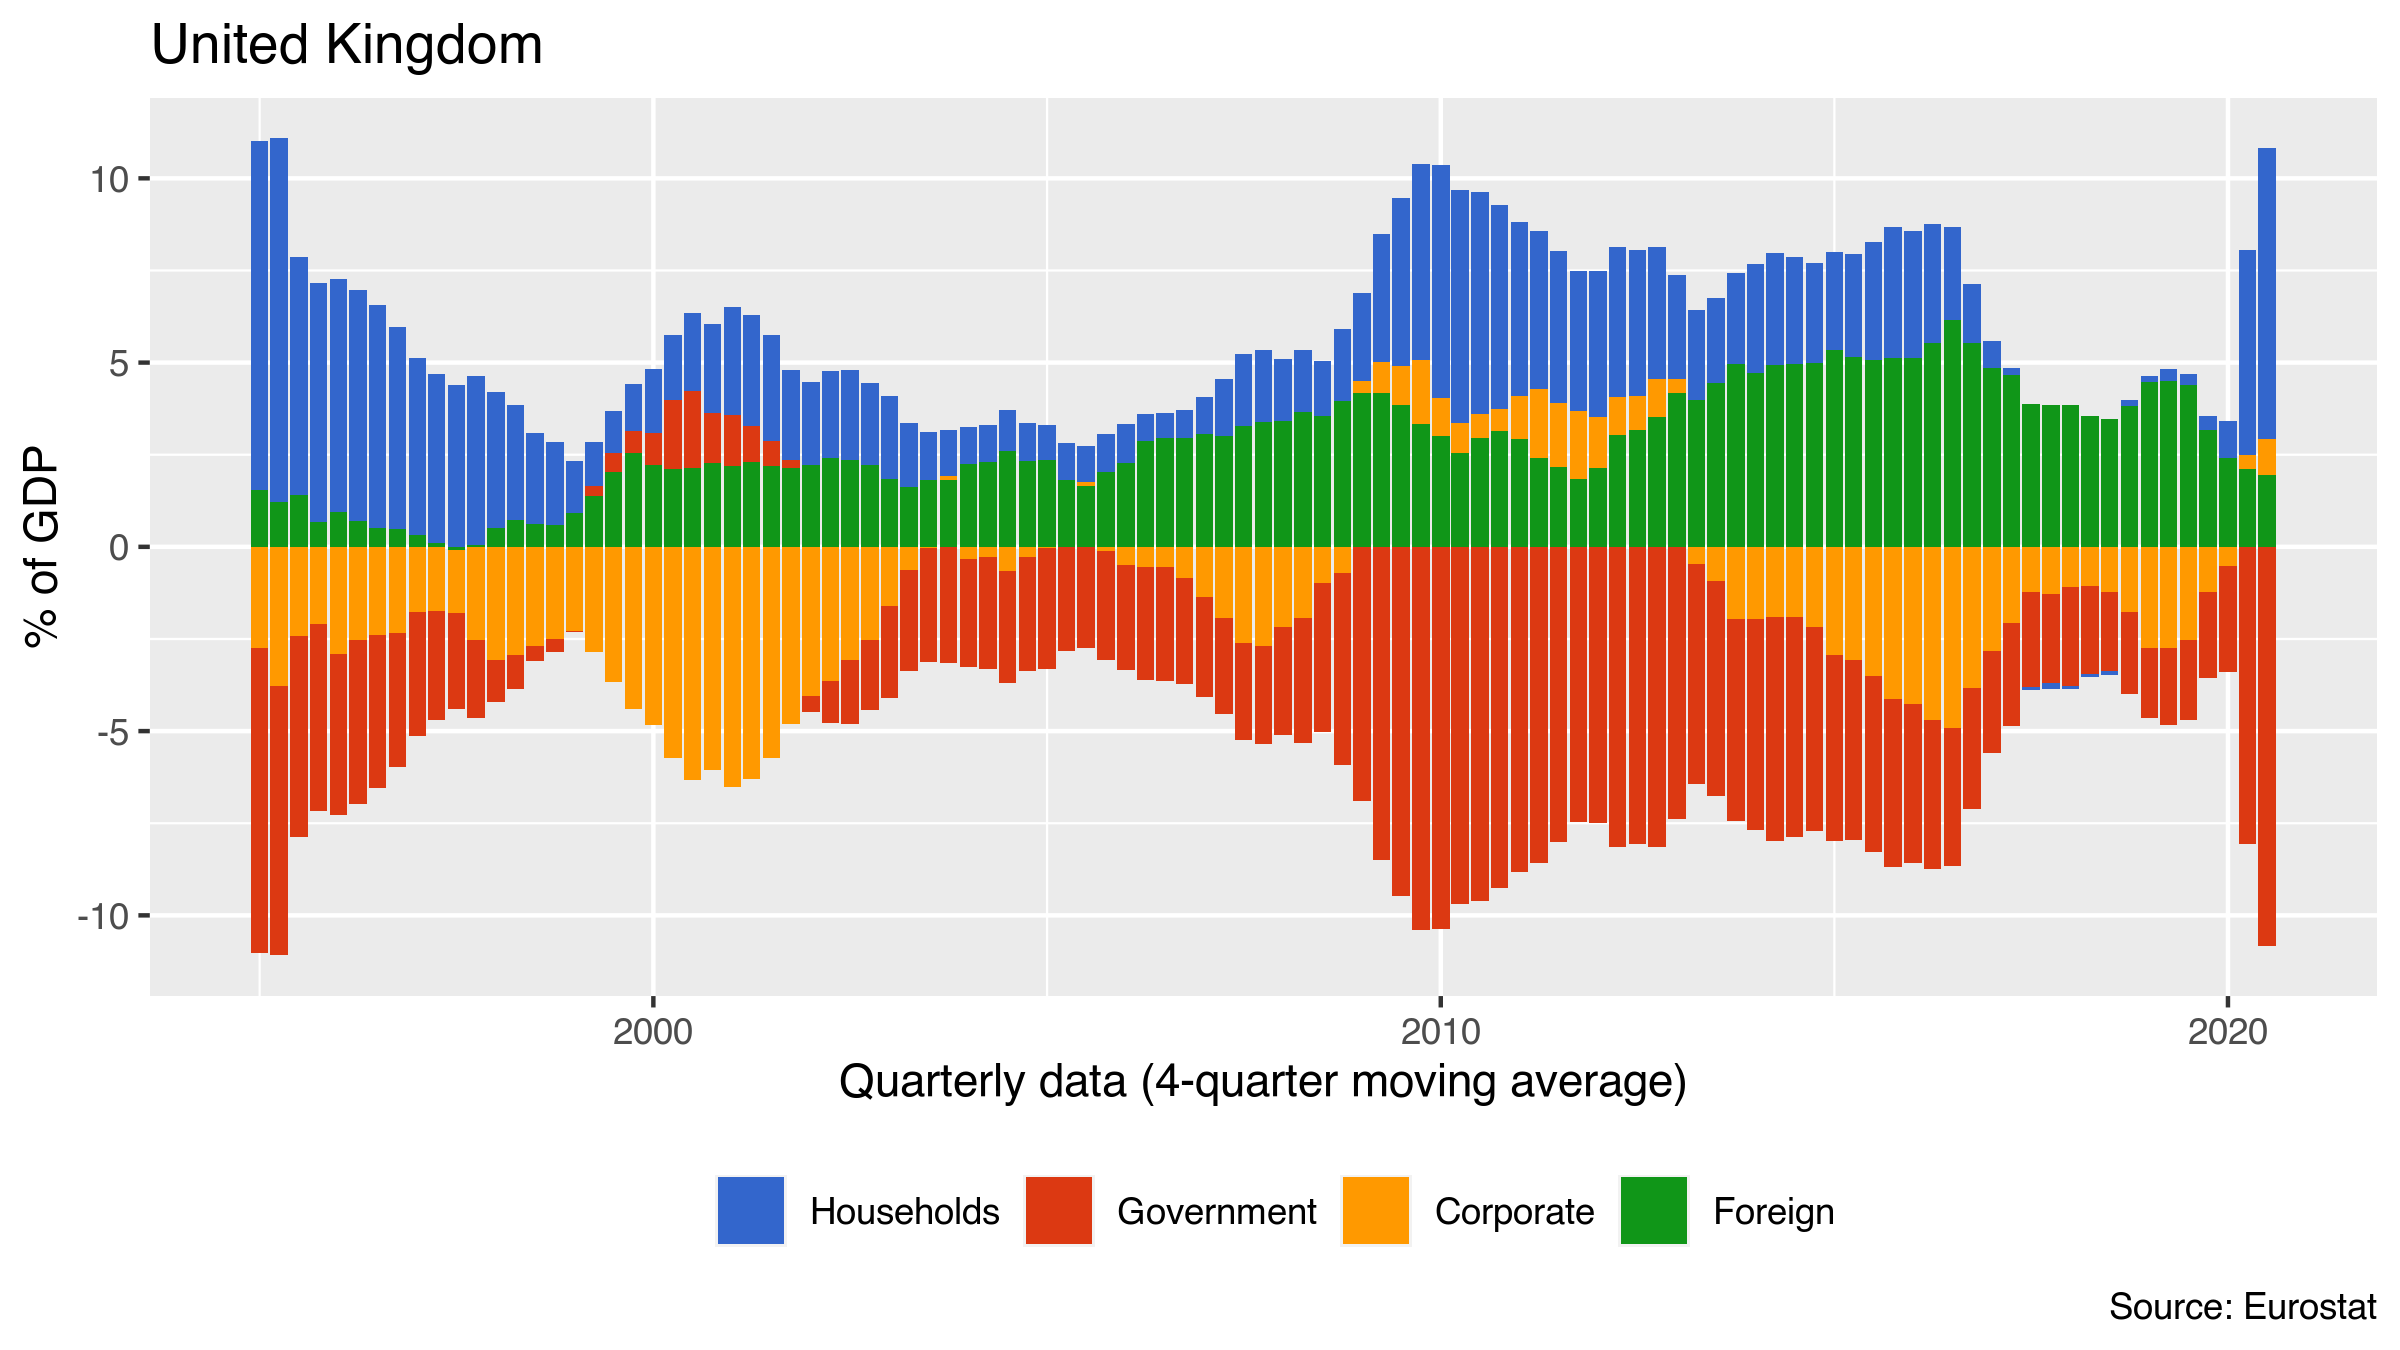 UK sectoral balances